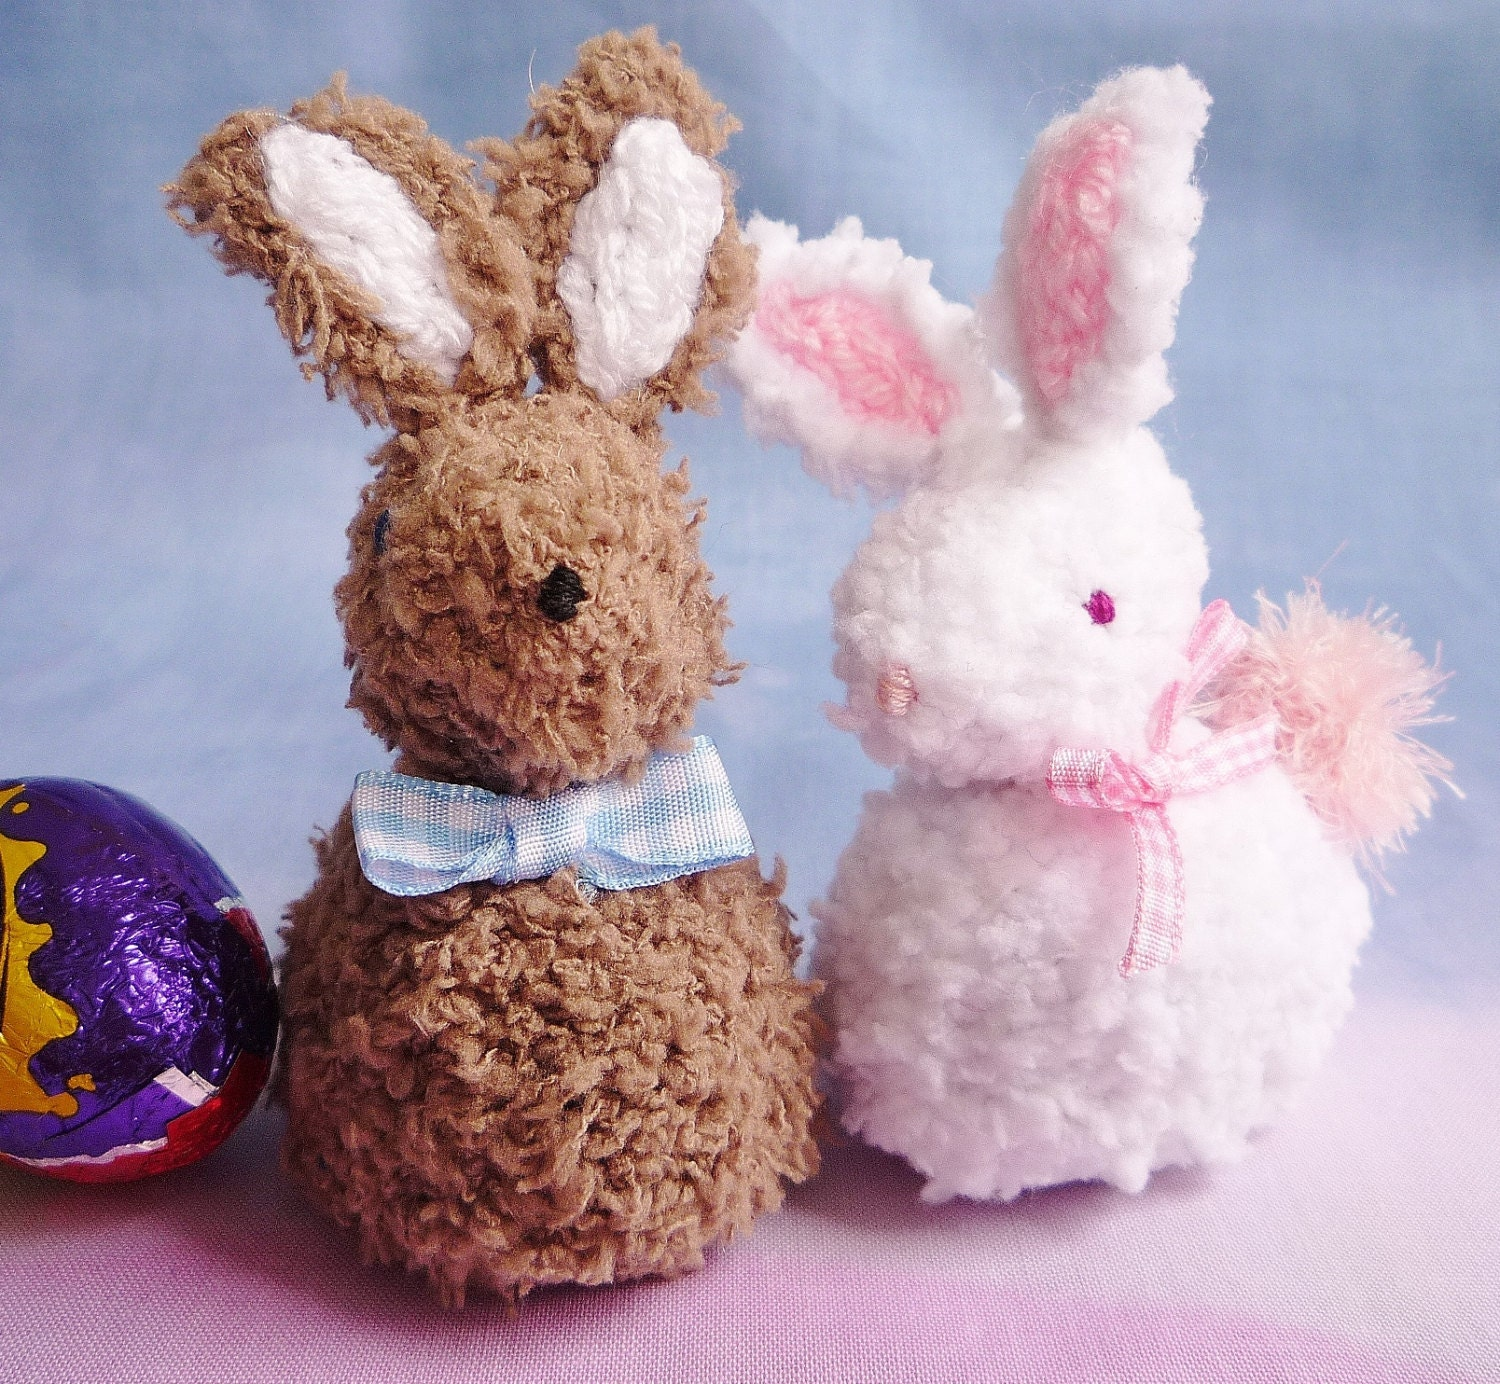 Easter Bunny Knitting Pattern : knitting pattern EASTER BUNNY creme egg cover